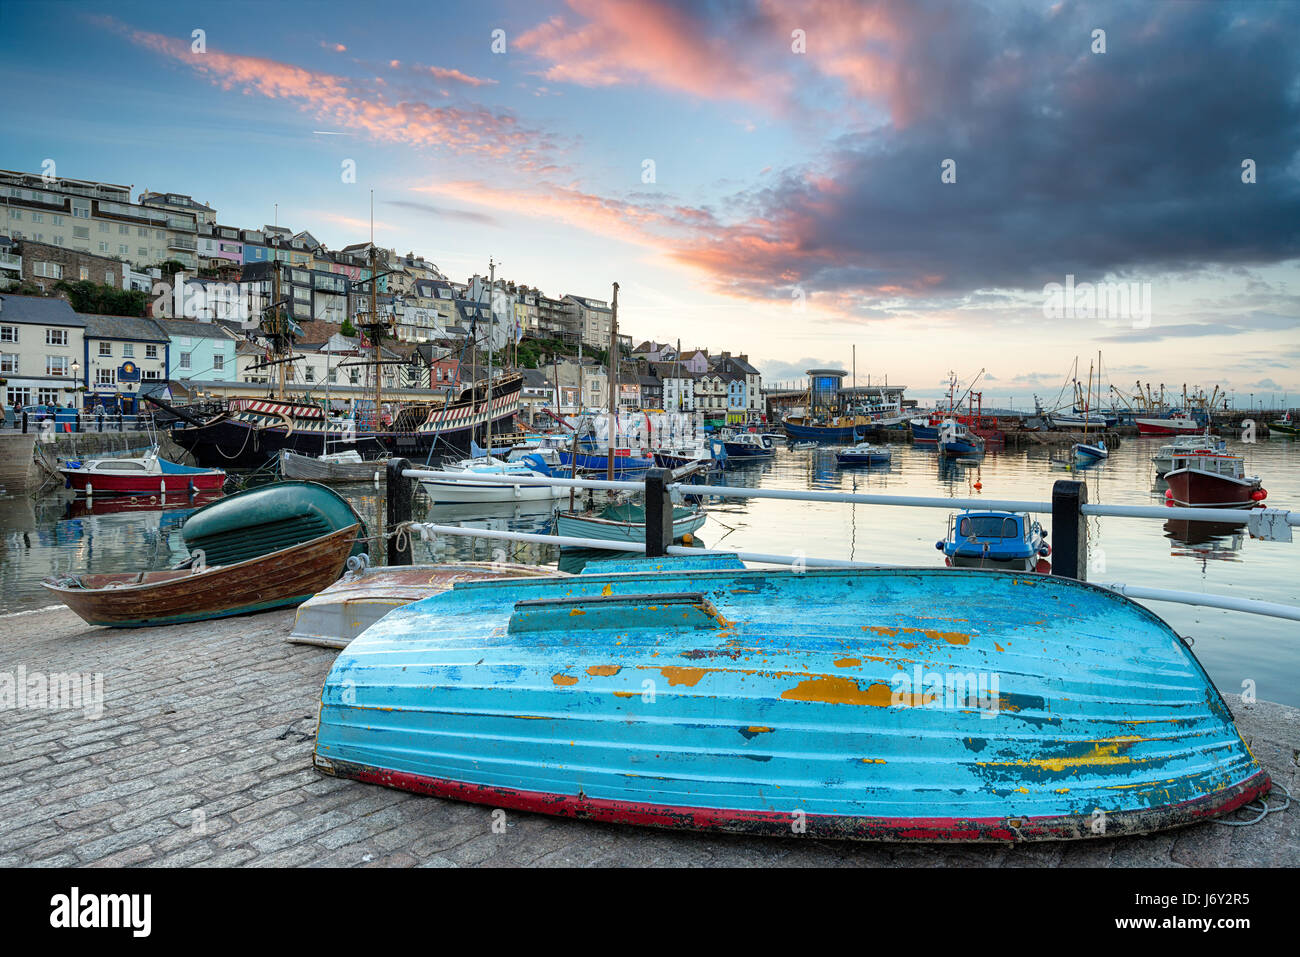 Boats in the harbour at Brixham on the south coast of Devon - Stock Image